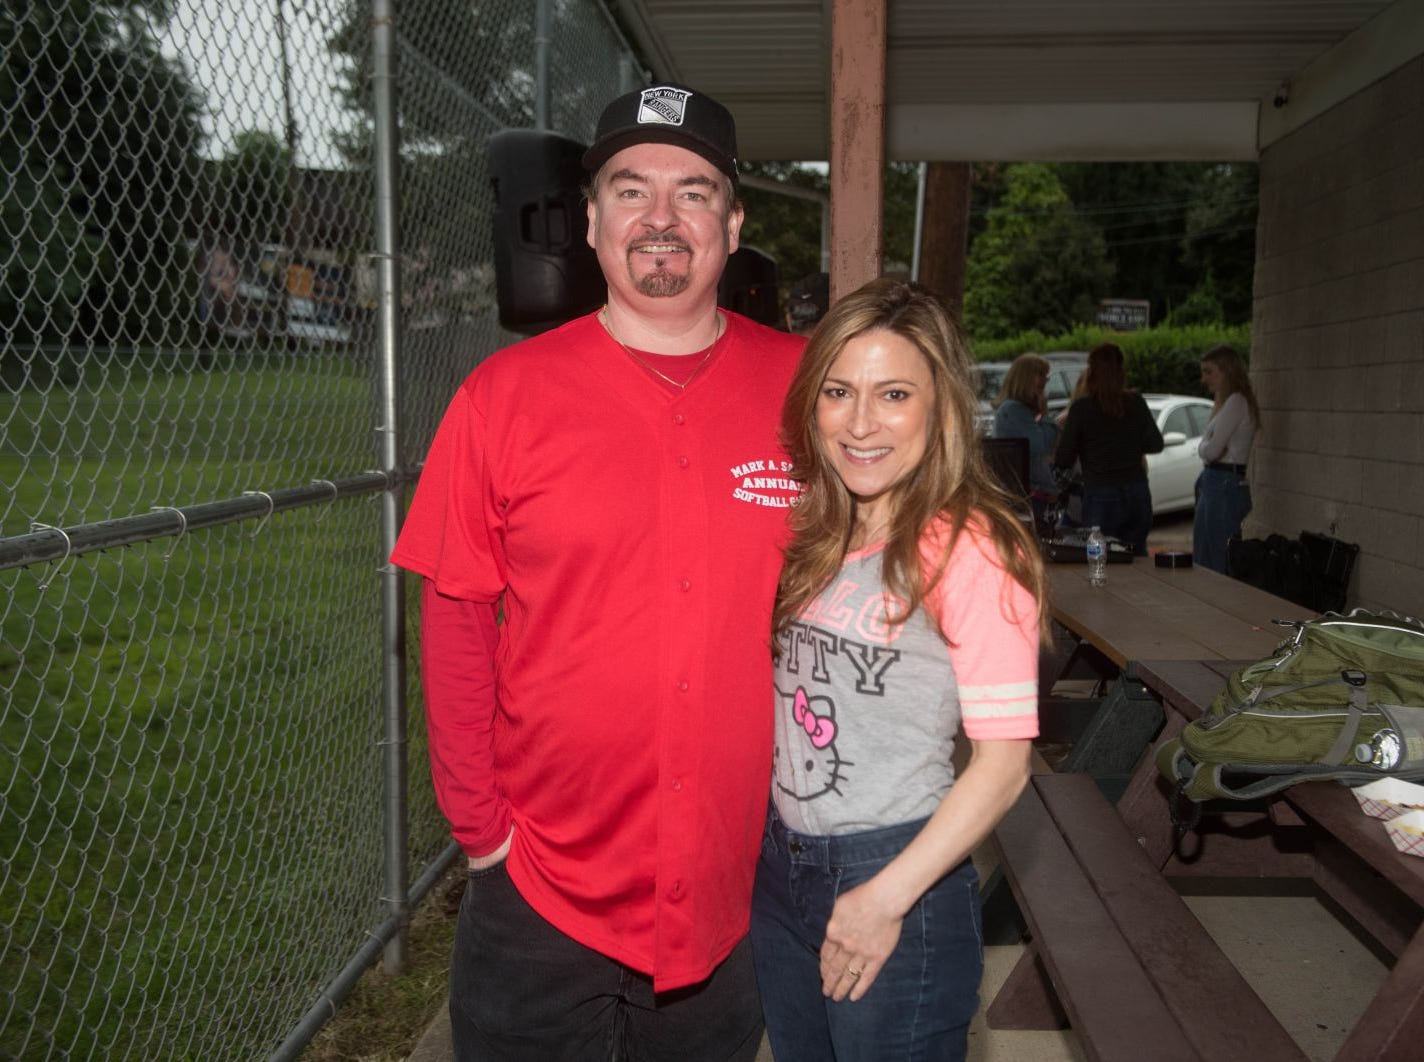 Brian O'Halloran and Diana Devlin. Mark A. Sasso Memorial Fund hosted its 10th annual Softball Fundraiser this past Saturday at Wagaraw Baseball Field in Hawthorne. Don La Greca was joined by many of his fellow ESPN personalities and celebrity guests to play against the winning ALRC team from the round robin tournament that took place throughout the day. 09/08/2018